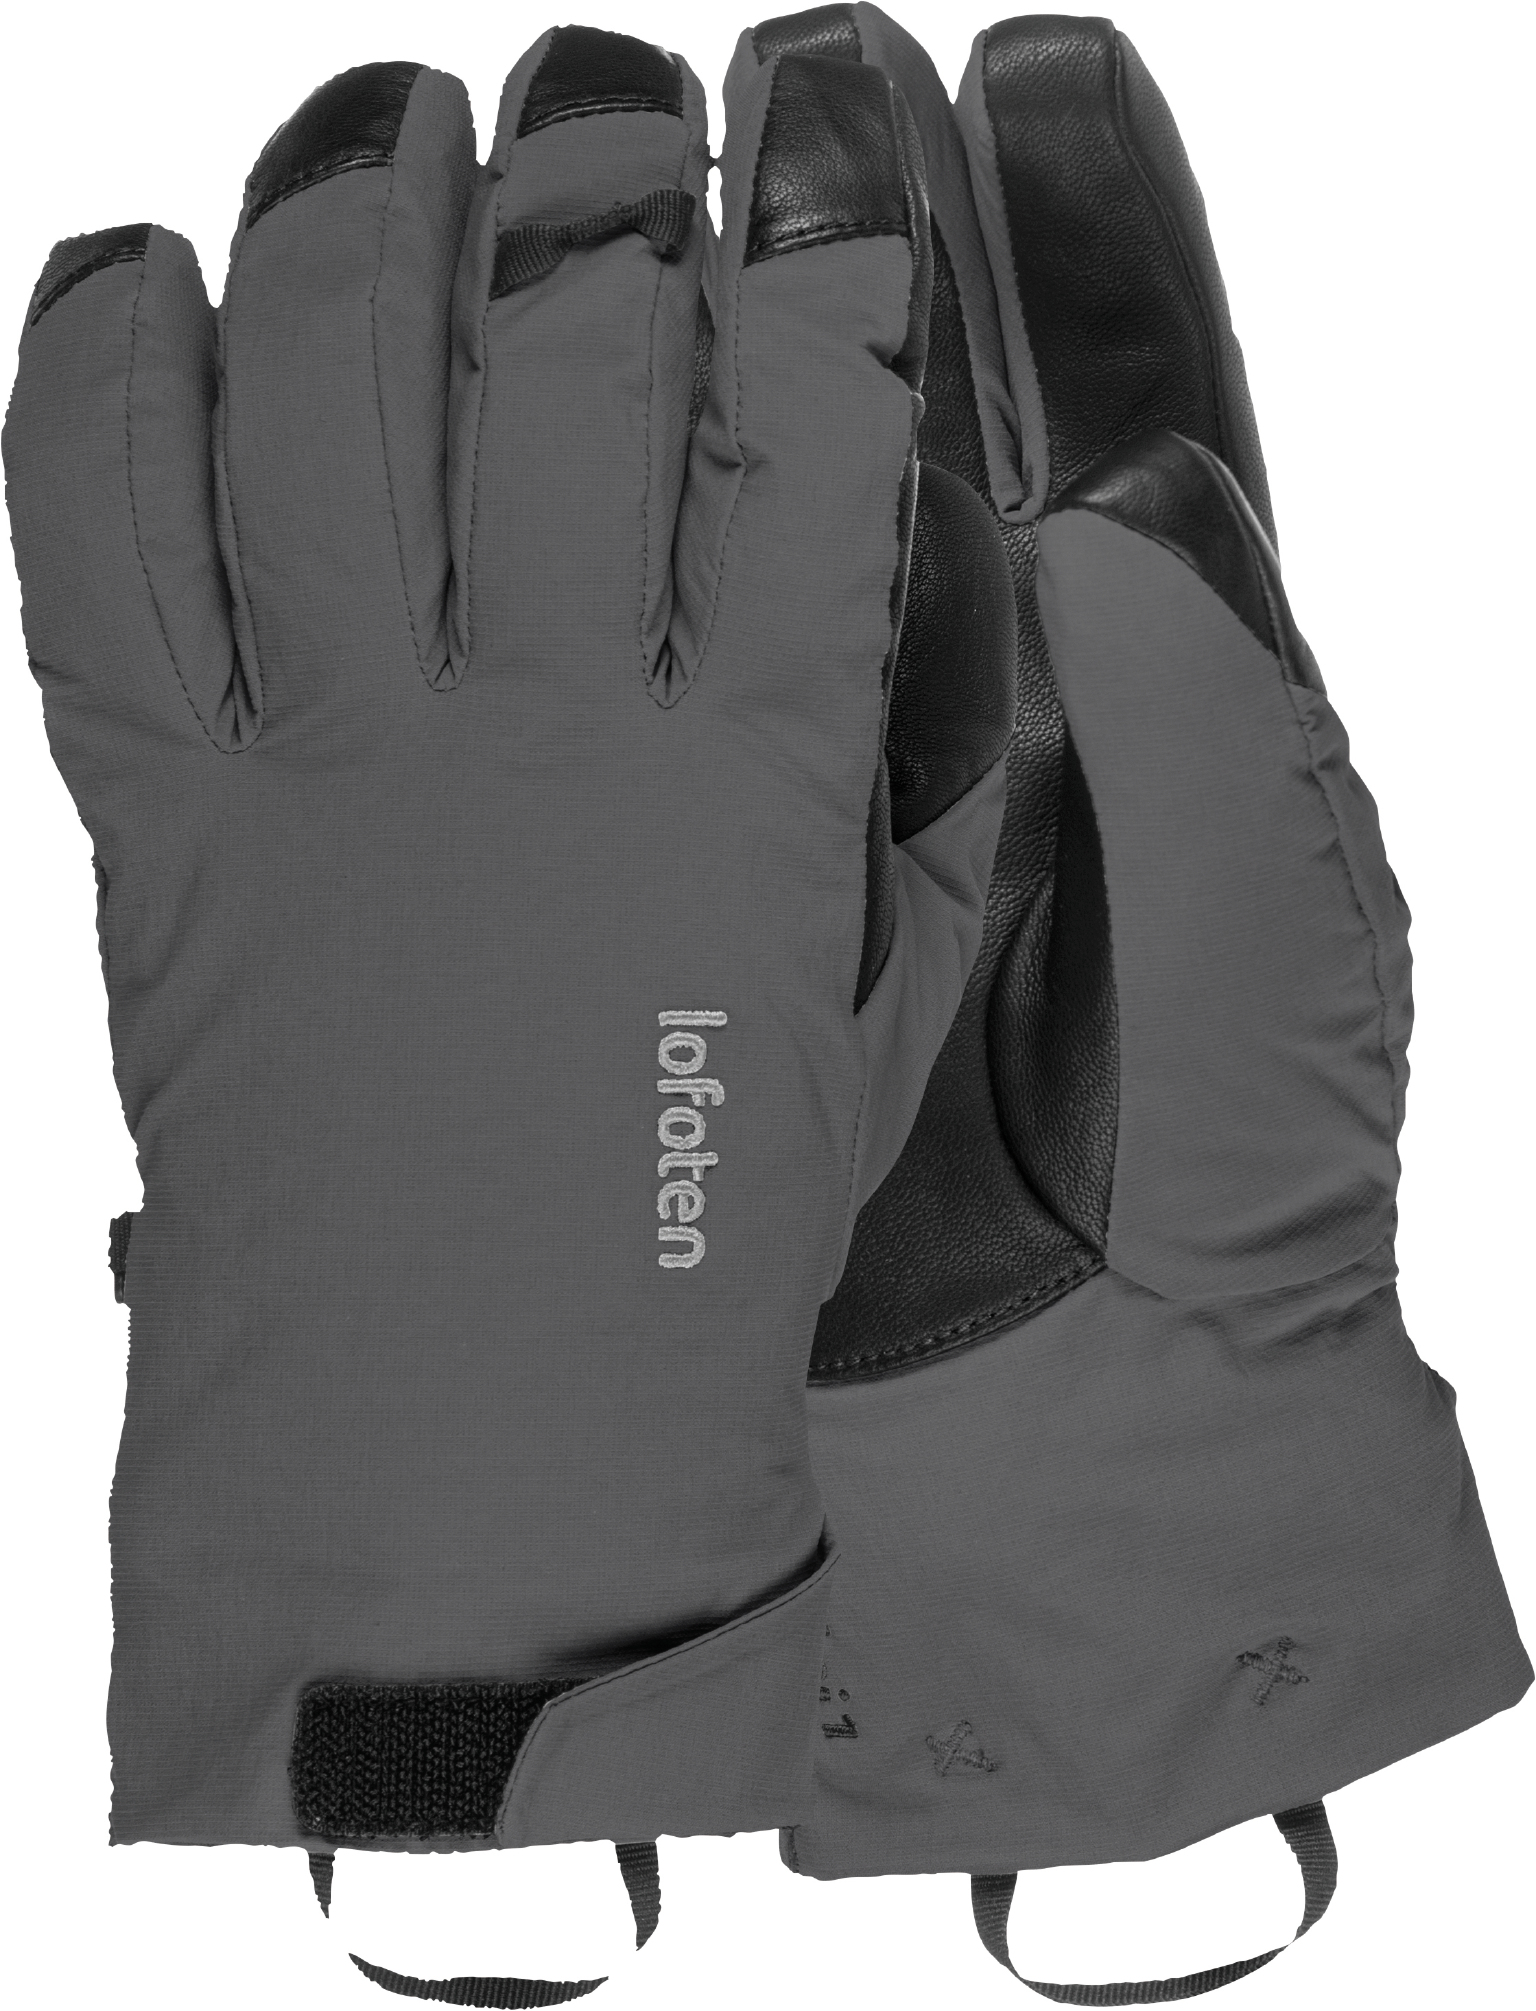 Norrøna Lofoten dri1 PrimaLoft170 short Gloves Phantom XL 2018